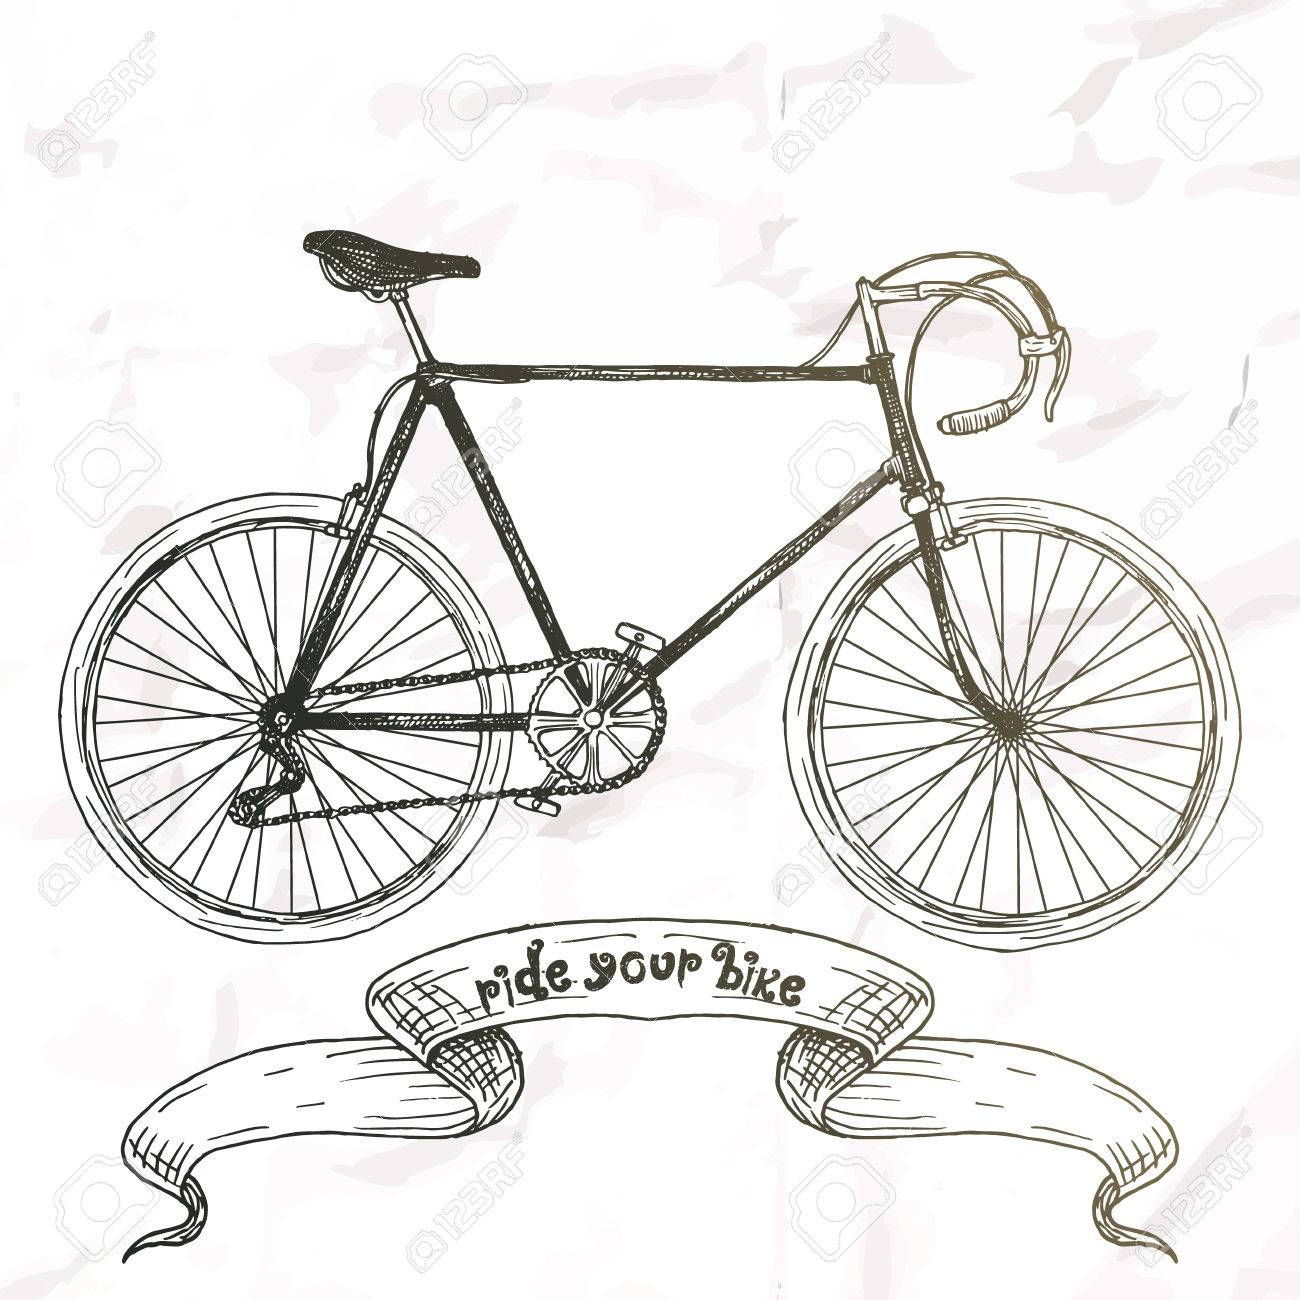 1300x1300 Ride Your Bike Picture. Hand Drawn Vintage. Royalty Free Cliparts